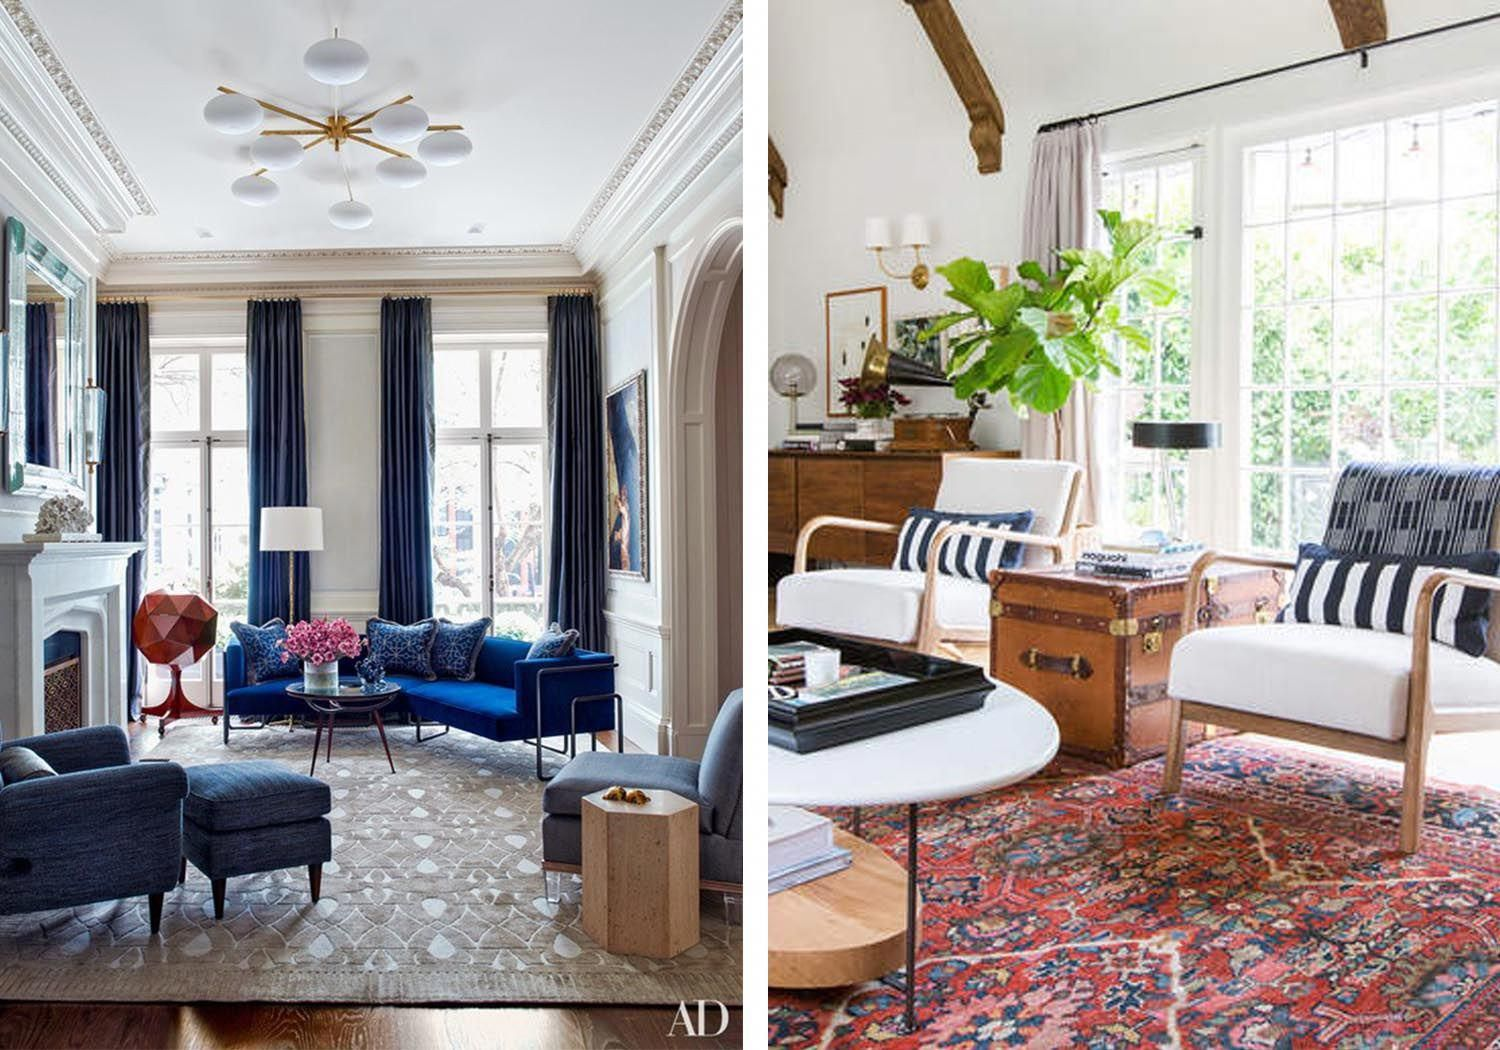 Traditional style meets contemporary aesthetic in these stylish interiors in the grand living room on the left a blue sofa and chic pendant light fixture